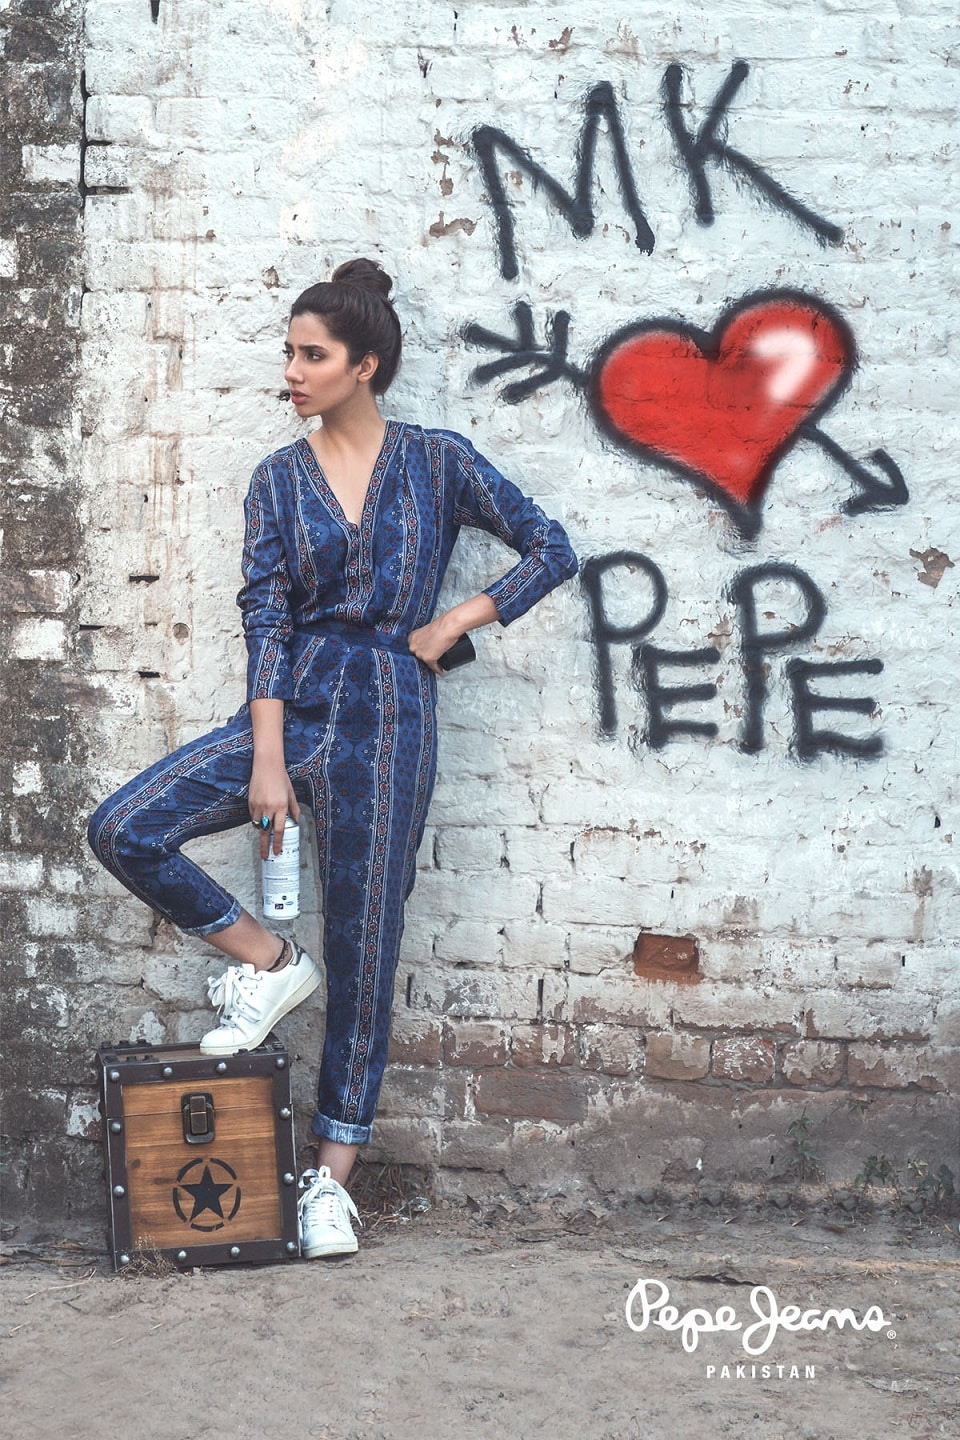 Mahira Khan for Pepe Jeans Pakistan Winter 2015 Campaign – #MKLovesPepe (13)